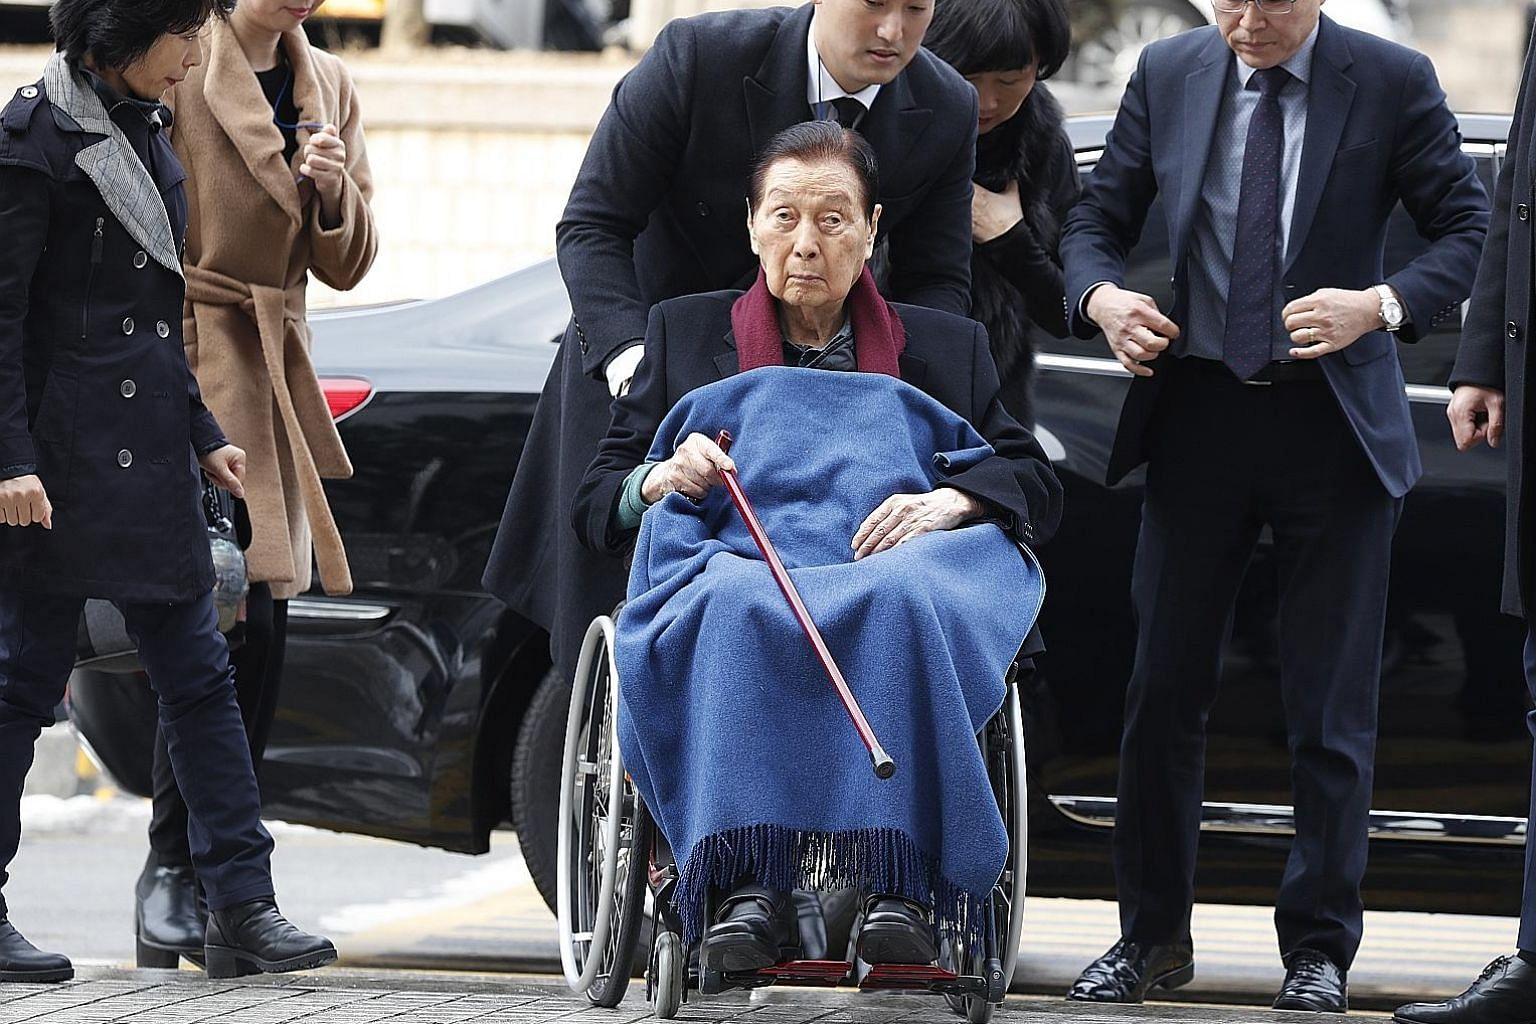 Lotte Group founder Shin Kyuk-ho (centre), who died on Sunday at 97, never established a clear heir apparent, the writer says. Five years ago, Mr Shin's two sons were already jockeying for power as their father's health declined.